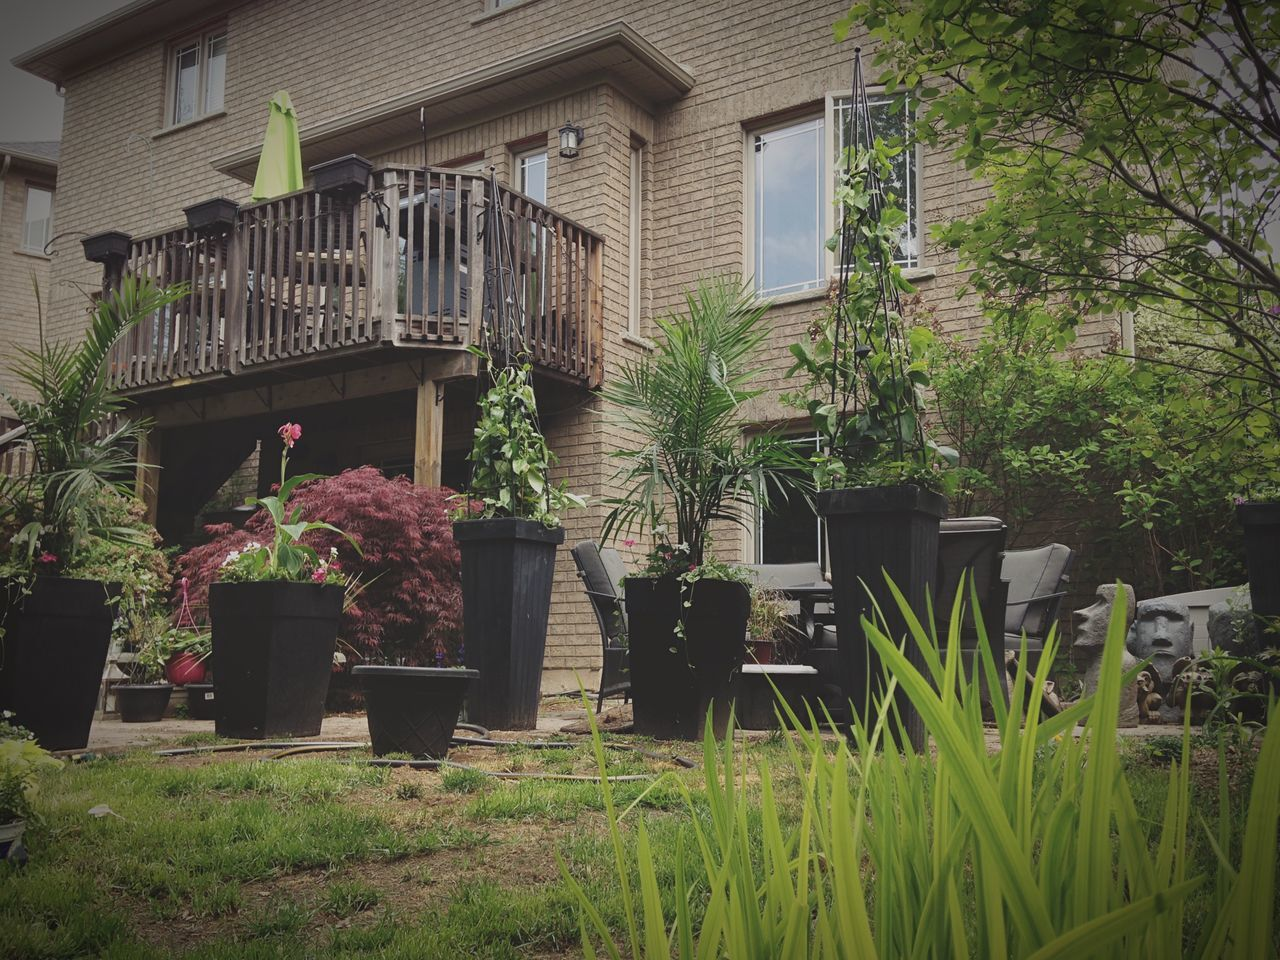 plant, growth, potted plant, building exterior, architecture, outdoors, built structure, day, no people, grass, nature, tree